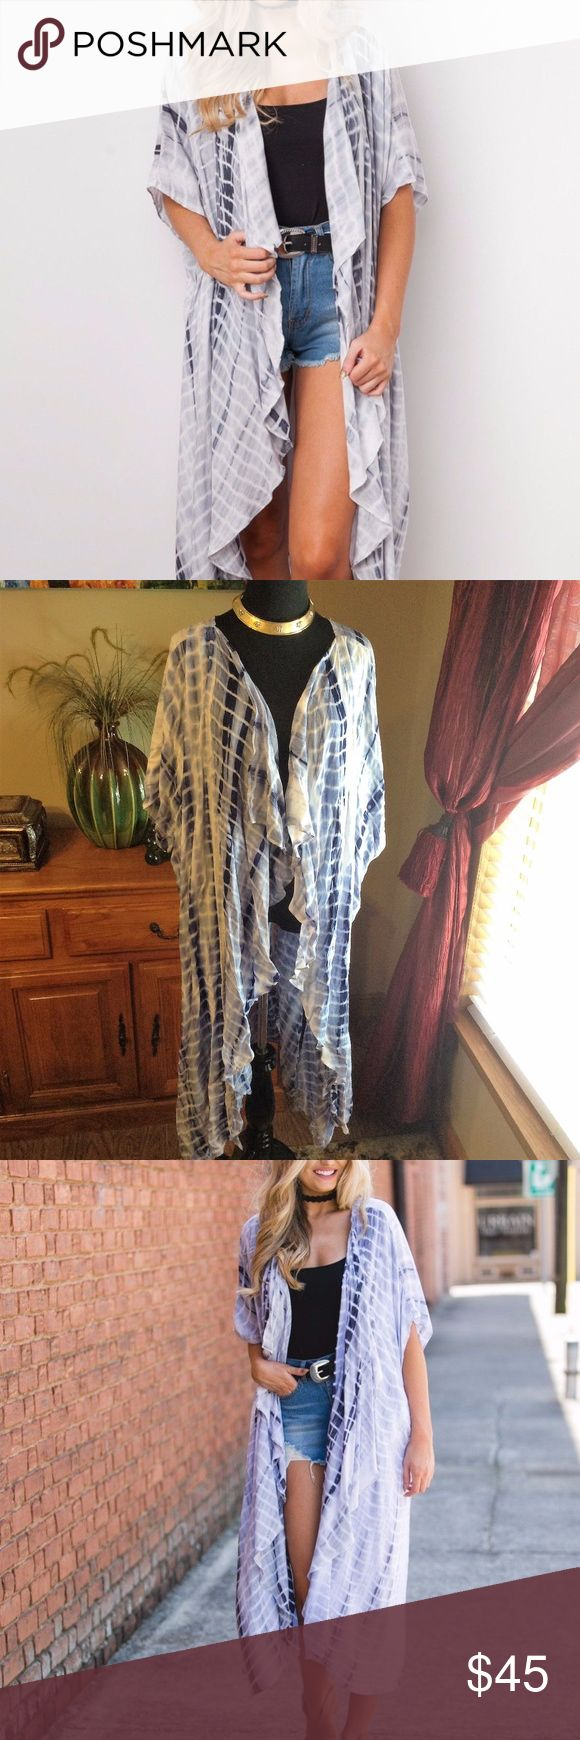 UMGEE Boho Gypsy BLUE Tie Dye Kimono/Cover up UMGEE BLUE Tie Dye Kimono Maxi Duster/Cover Up OVERSIZE Blue and white Size M/L Bamboo Tie Dye Kimono Style short Sleeves Maxi /DUSTER/cover up  Open Front- Waterfall Drape Great Beach Cover-Up Length 45-46 Pit-pit 33' I'm a size L/xl and I can fit this with no problem it fits oversize  to me it fits like a One size fit  New never worn missing tag Umgee Tops